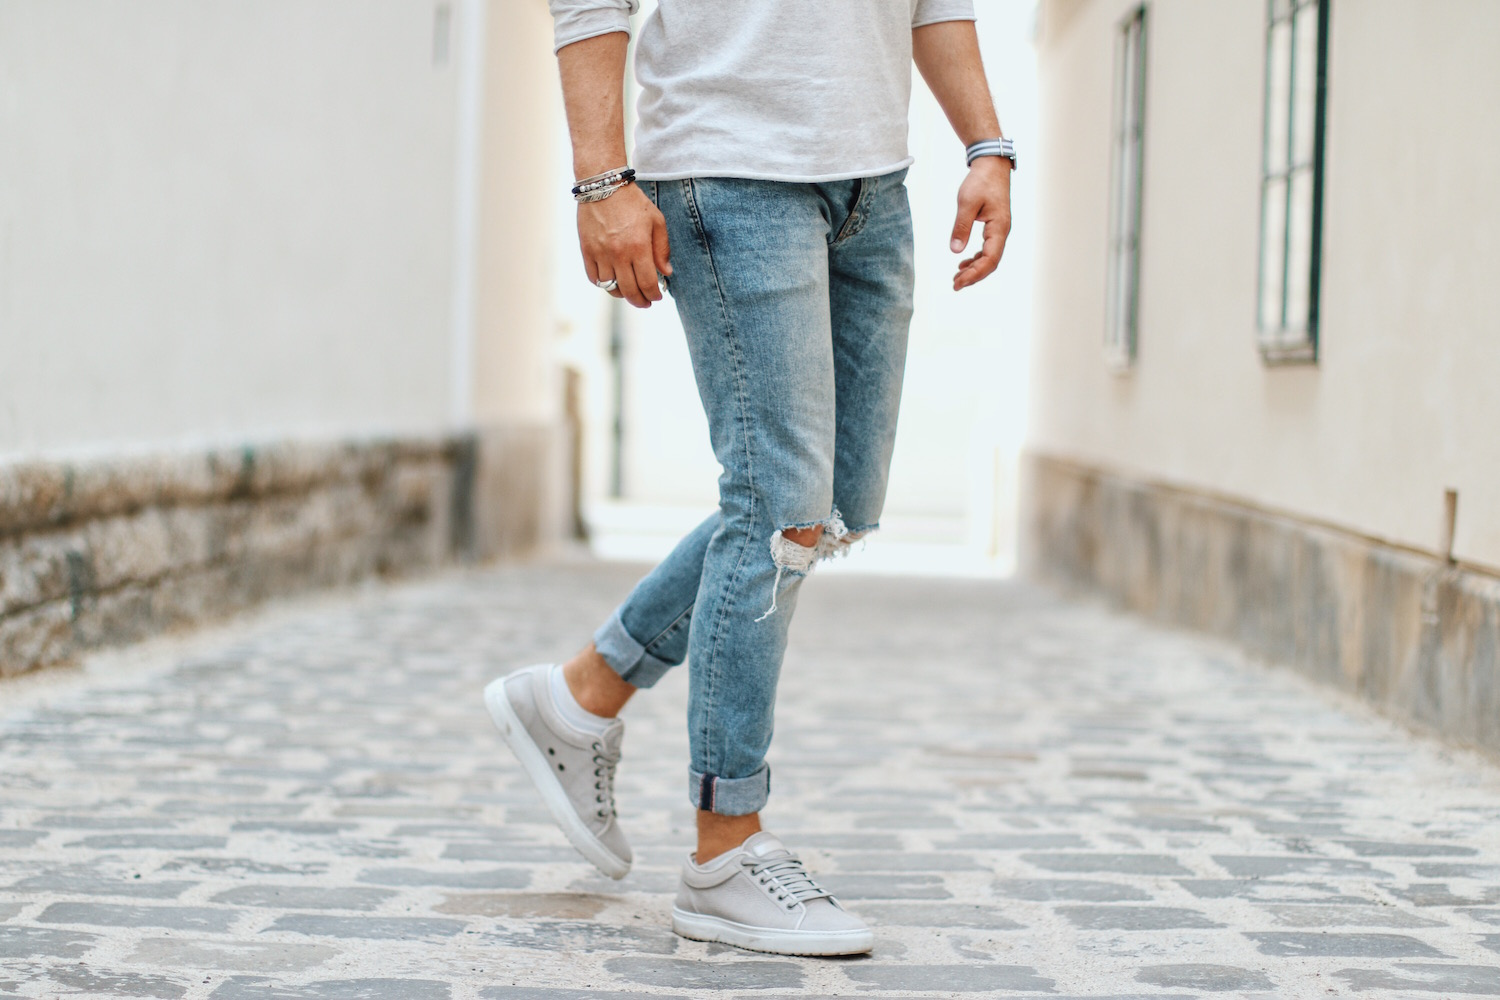 Summer Knit and Ripped Jeans_Outfit by Meanwhile in Awesometown_Selected_Jack and Jones Denim_Thomas Sabo Rebel at Heart